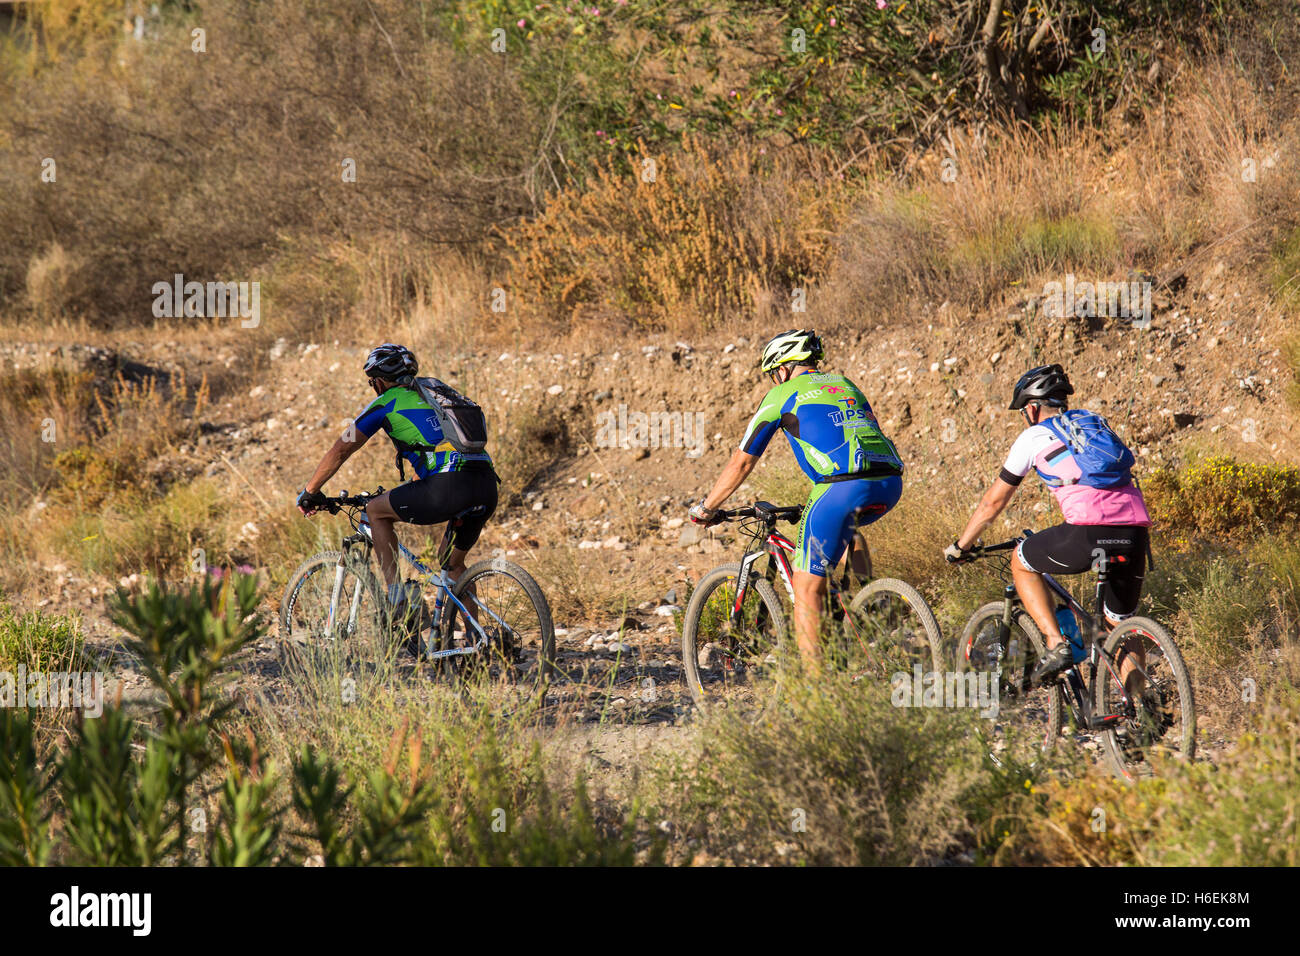 Mountain bikers on trails. Mijas. Costa del Sol, Malaga province. Andalusia Spain. Europe - Stock Image